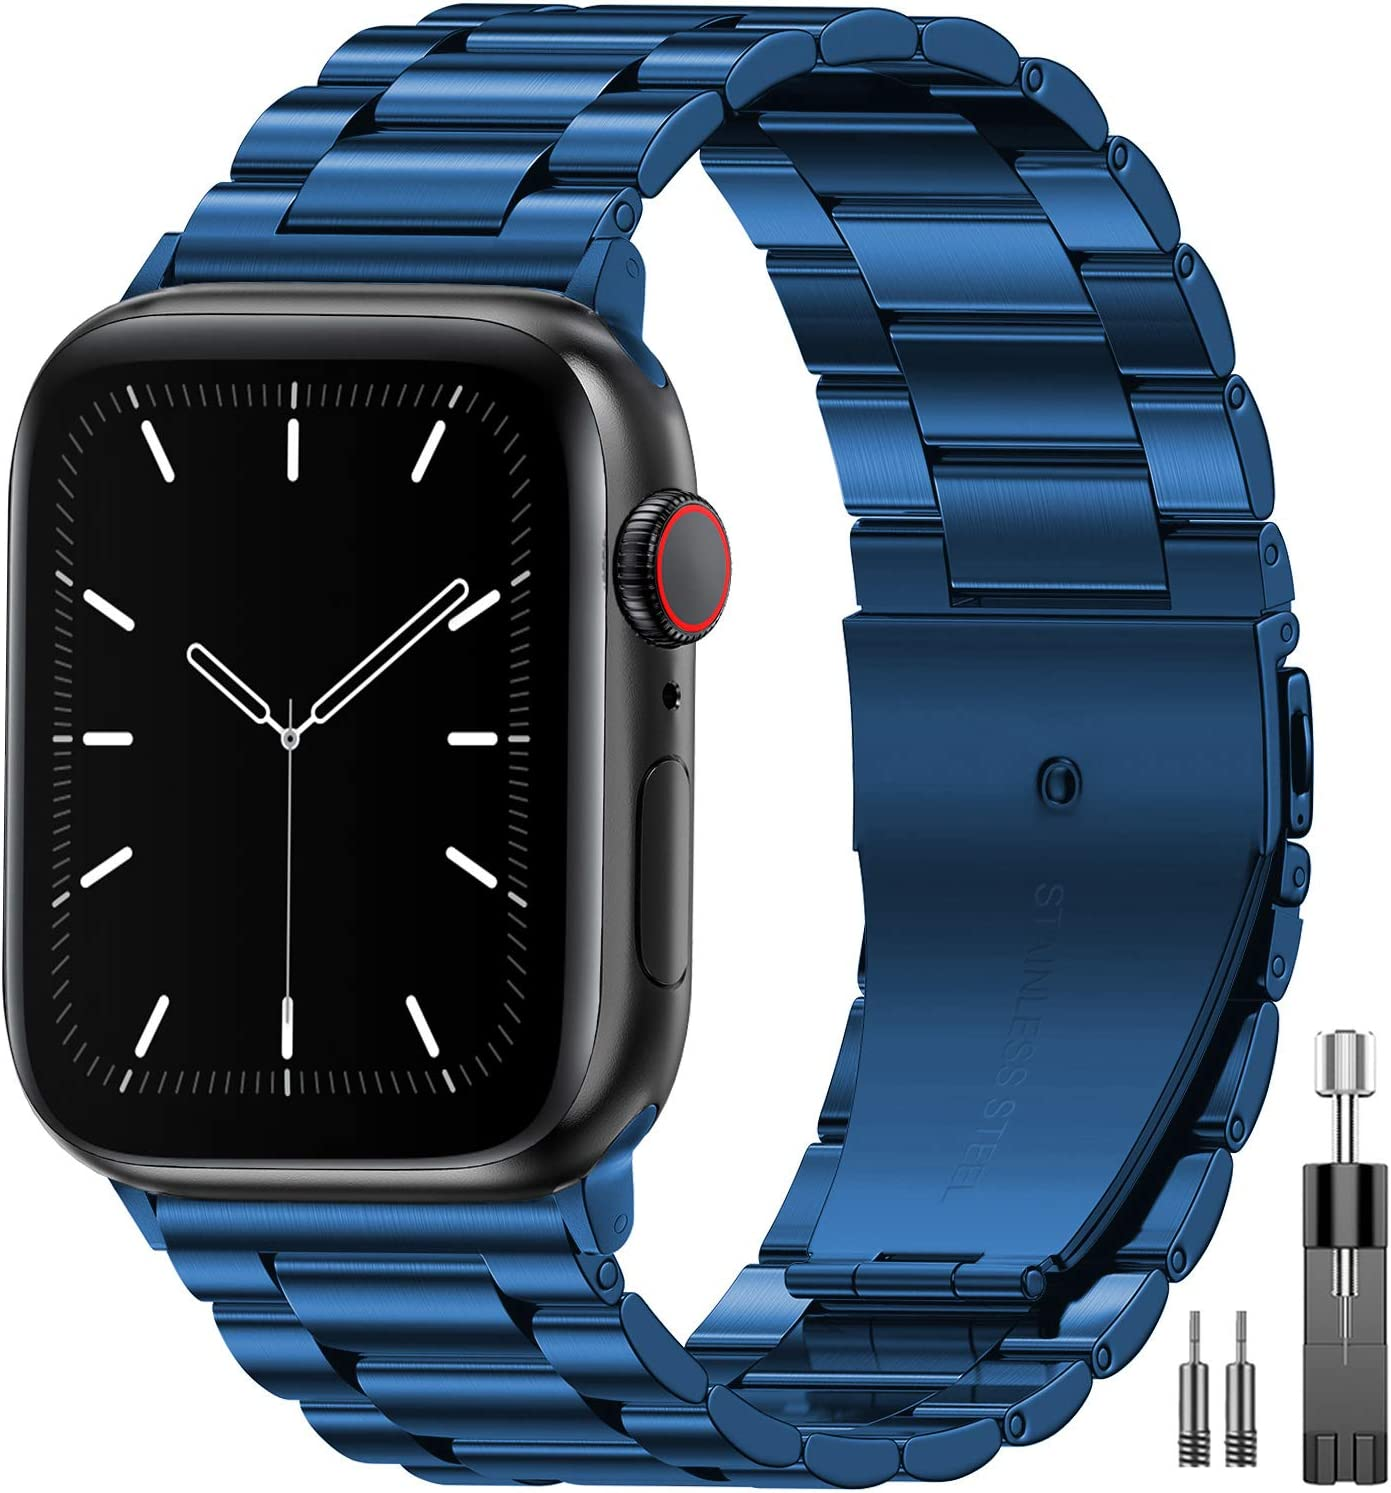 EPULY Compatible with Apple Watch Band 42mm 44mm 38mm 40mm ,Business Stainless Steel Metal Wristband for iWatch SE Series 6/5/4/3/2/1 (Blue, 38mm/40mm)